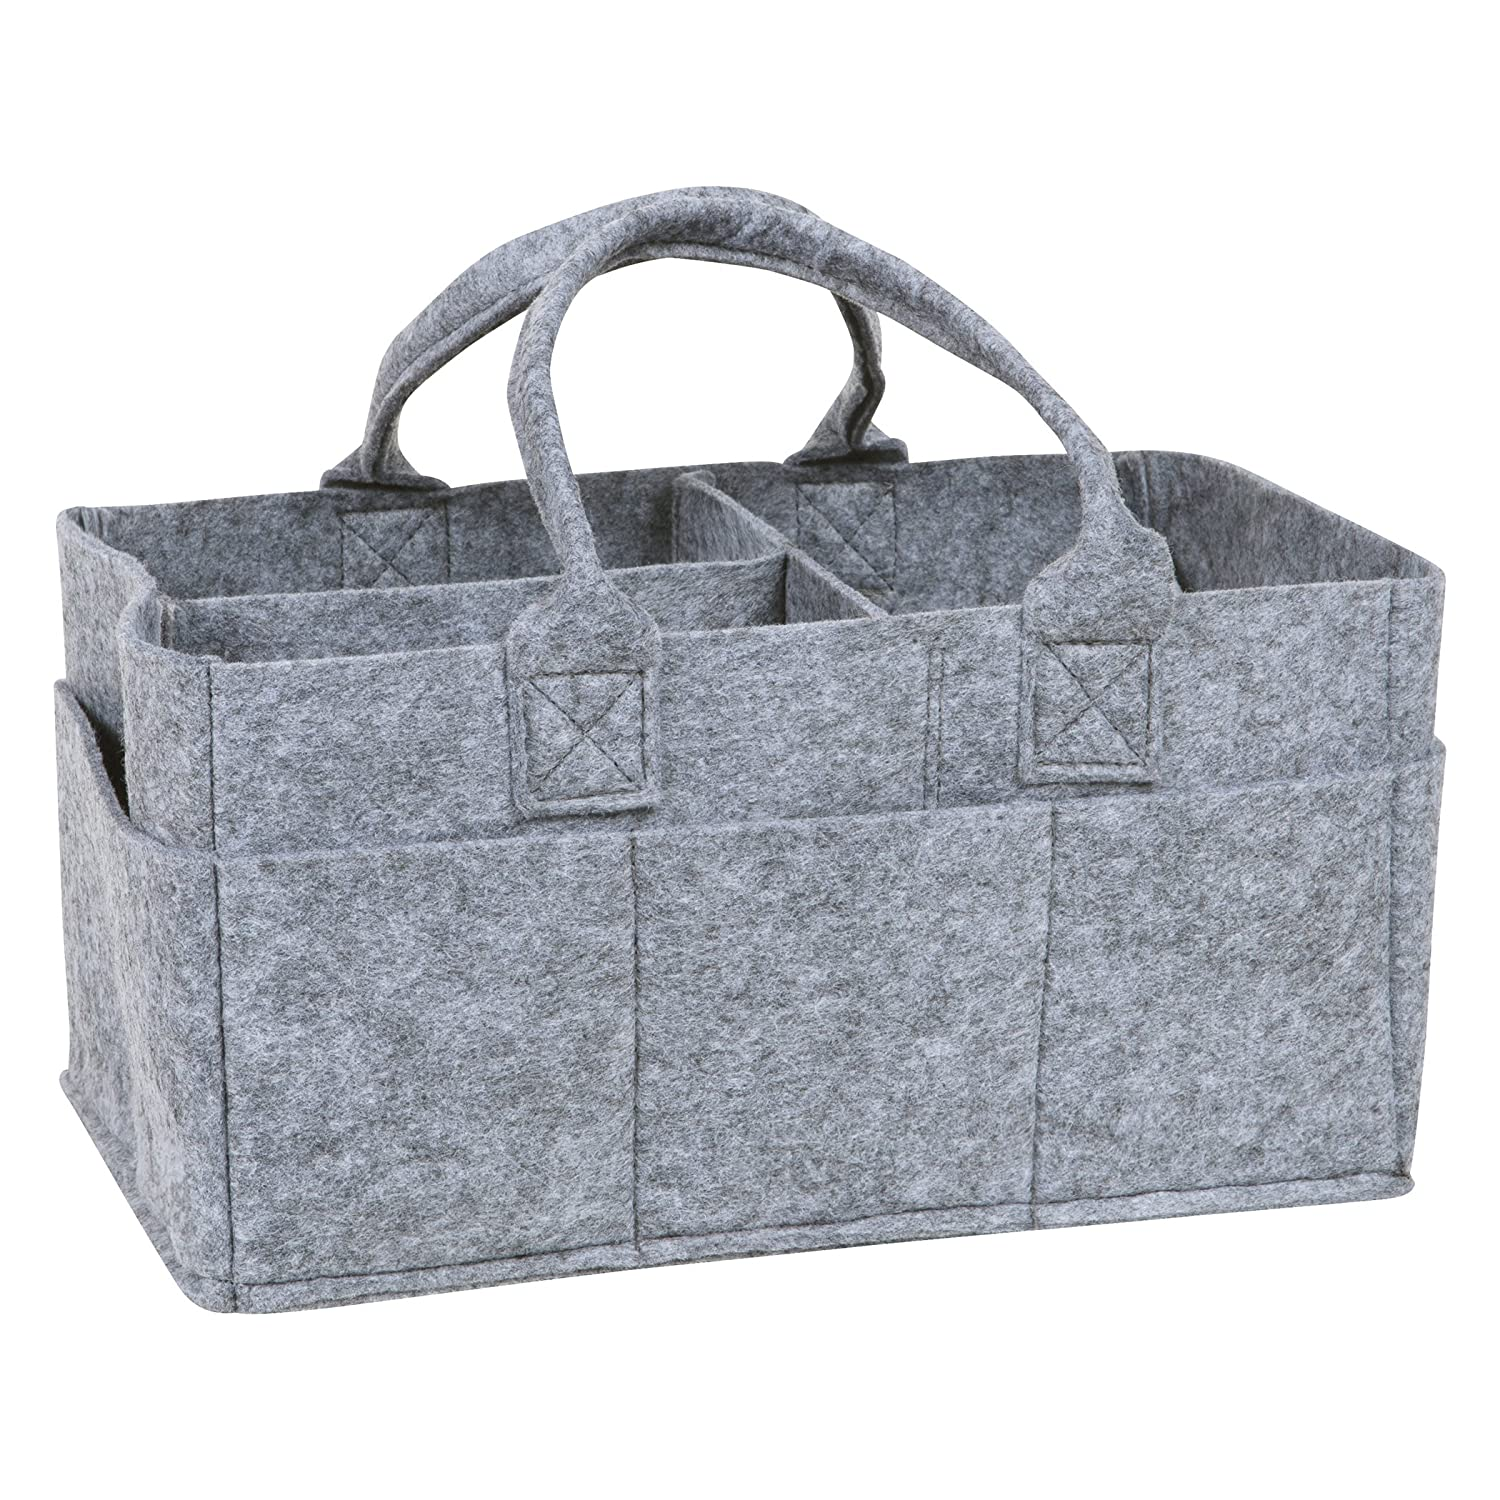 Sammy & Lou Felt Storage Caddy, Gray Trend Lab 103122